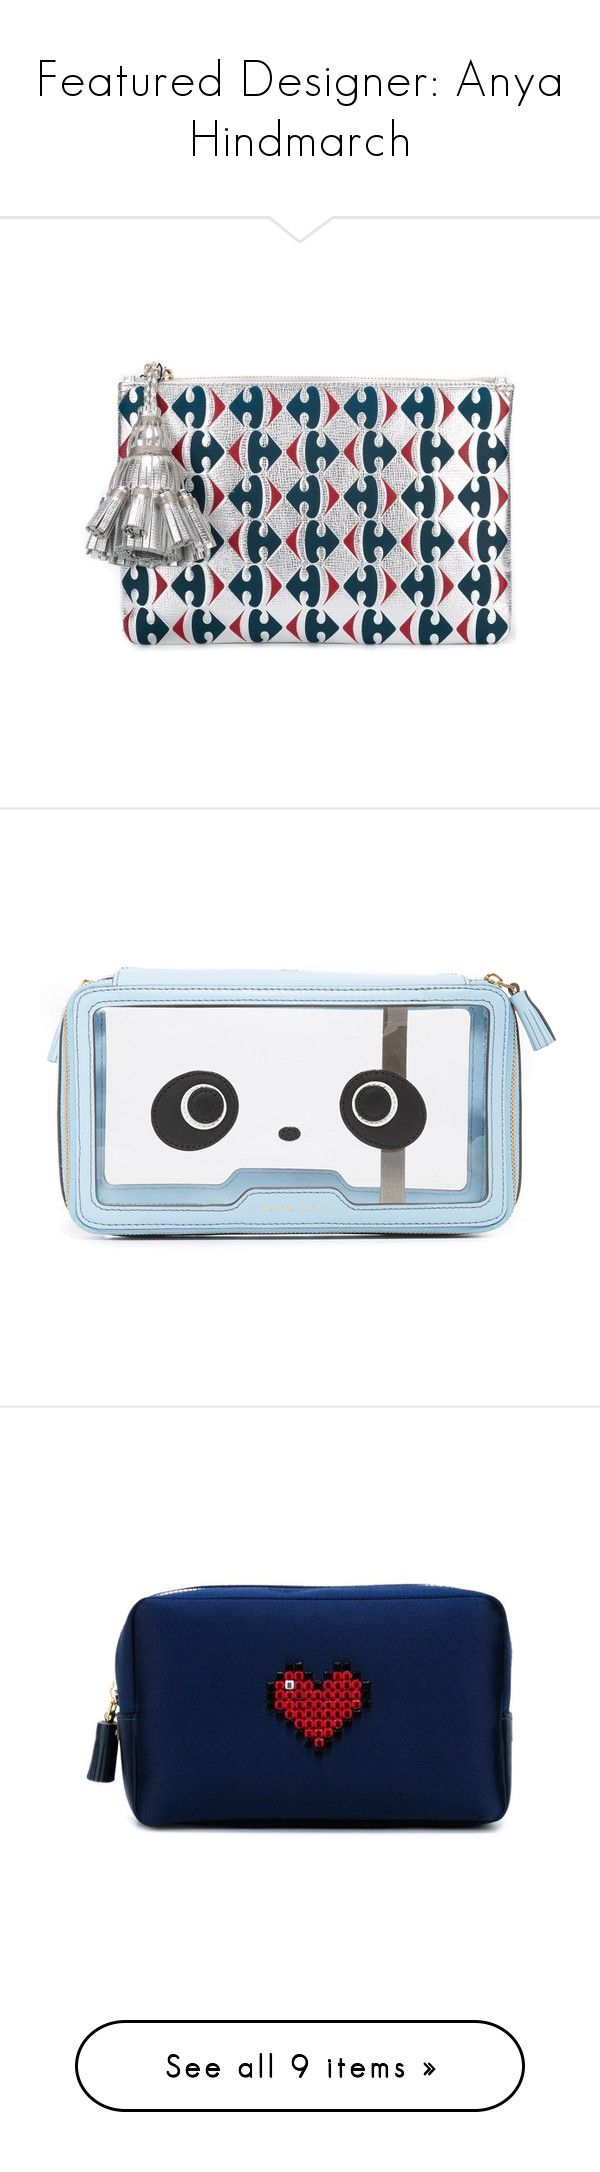 """""""Featured Designer: Anya Hindmarch"""" by modaedit on Polyvore featuring bags, handbags, clutches, anya hindmarch handbags, anya hindmarch purse, anya hindmarch, pouch purse, anya hindmarch pouch, pouch handbags and blue handbags"""